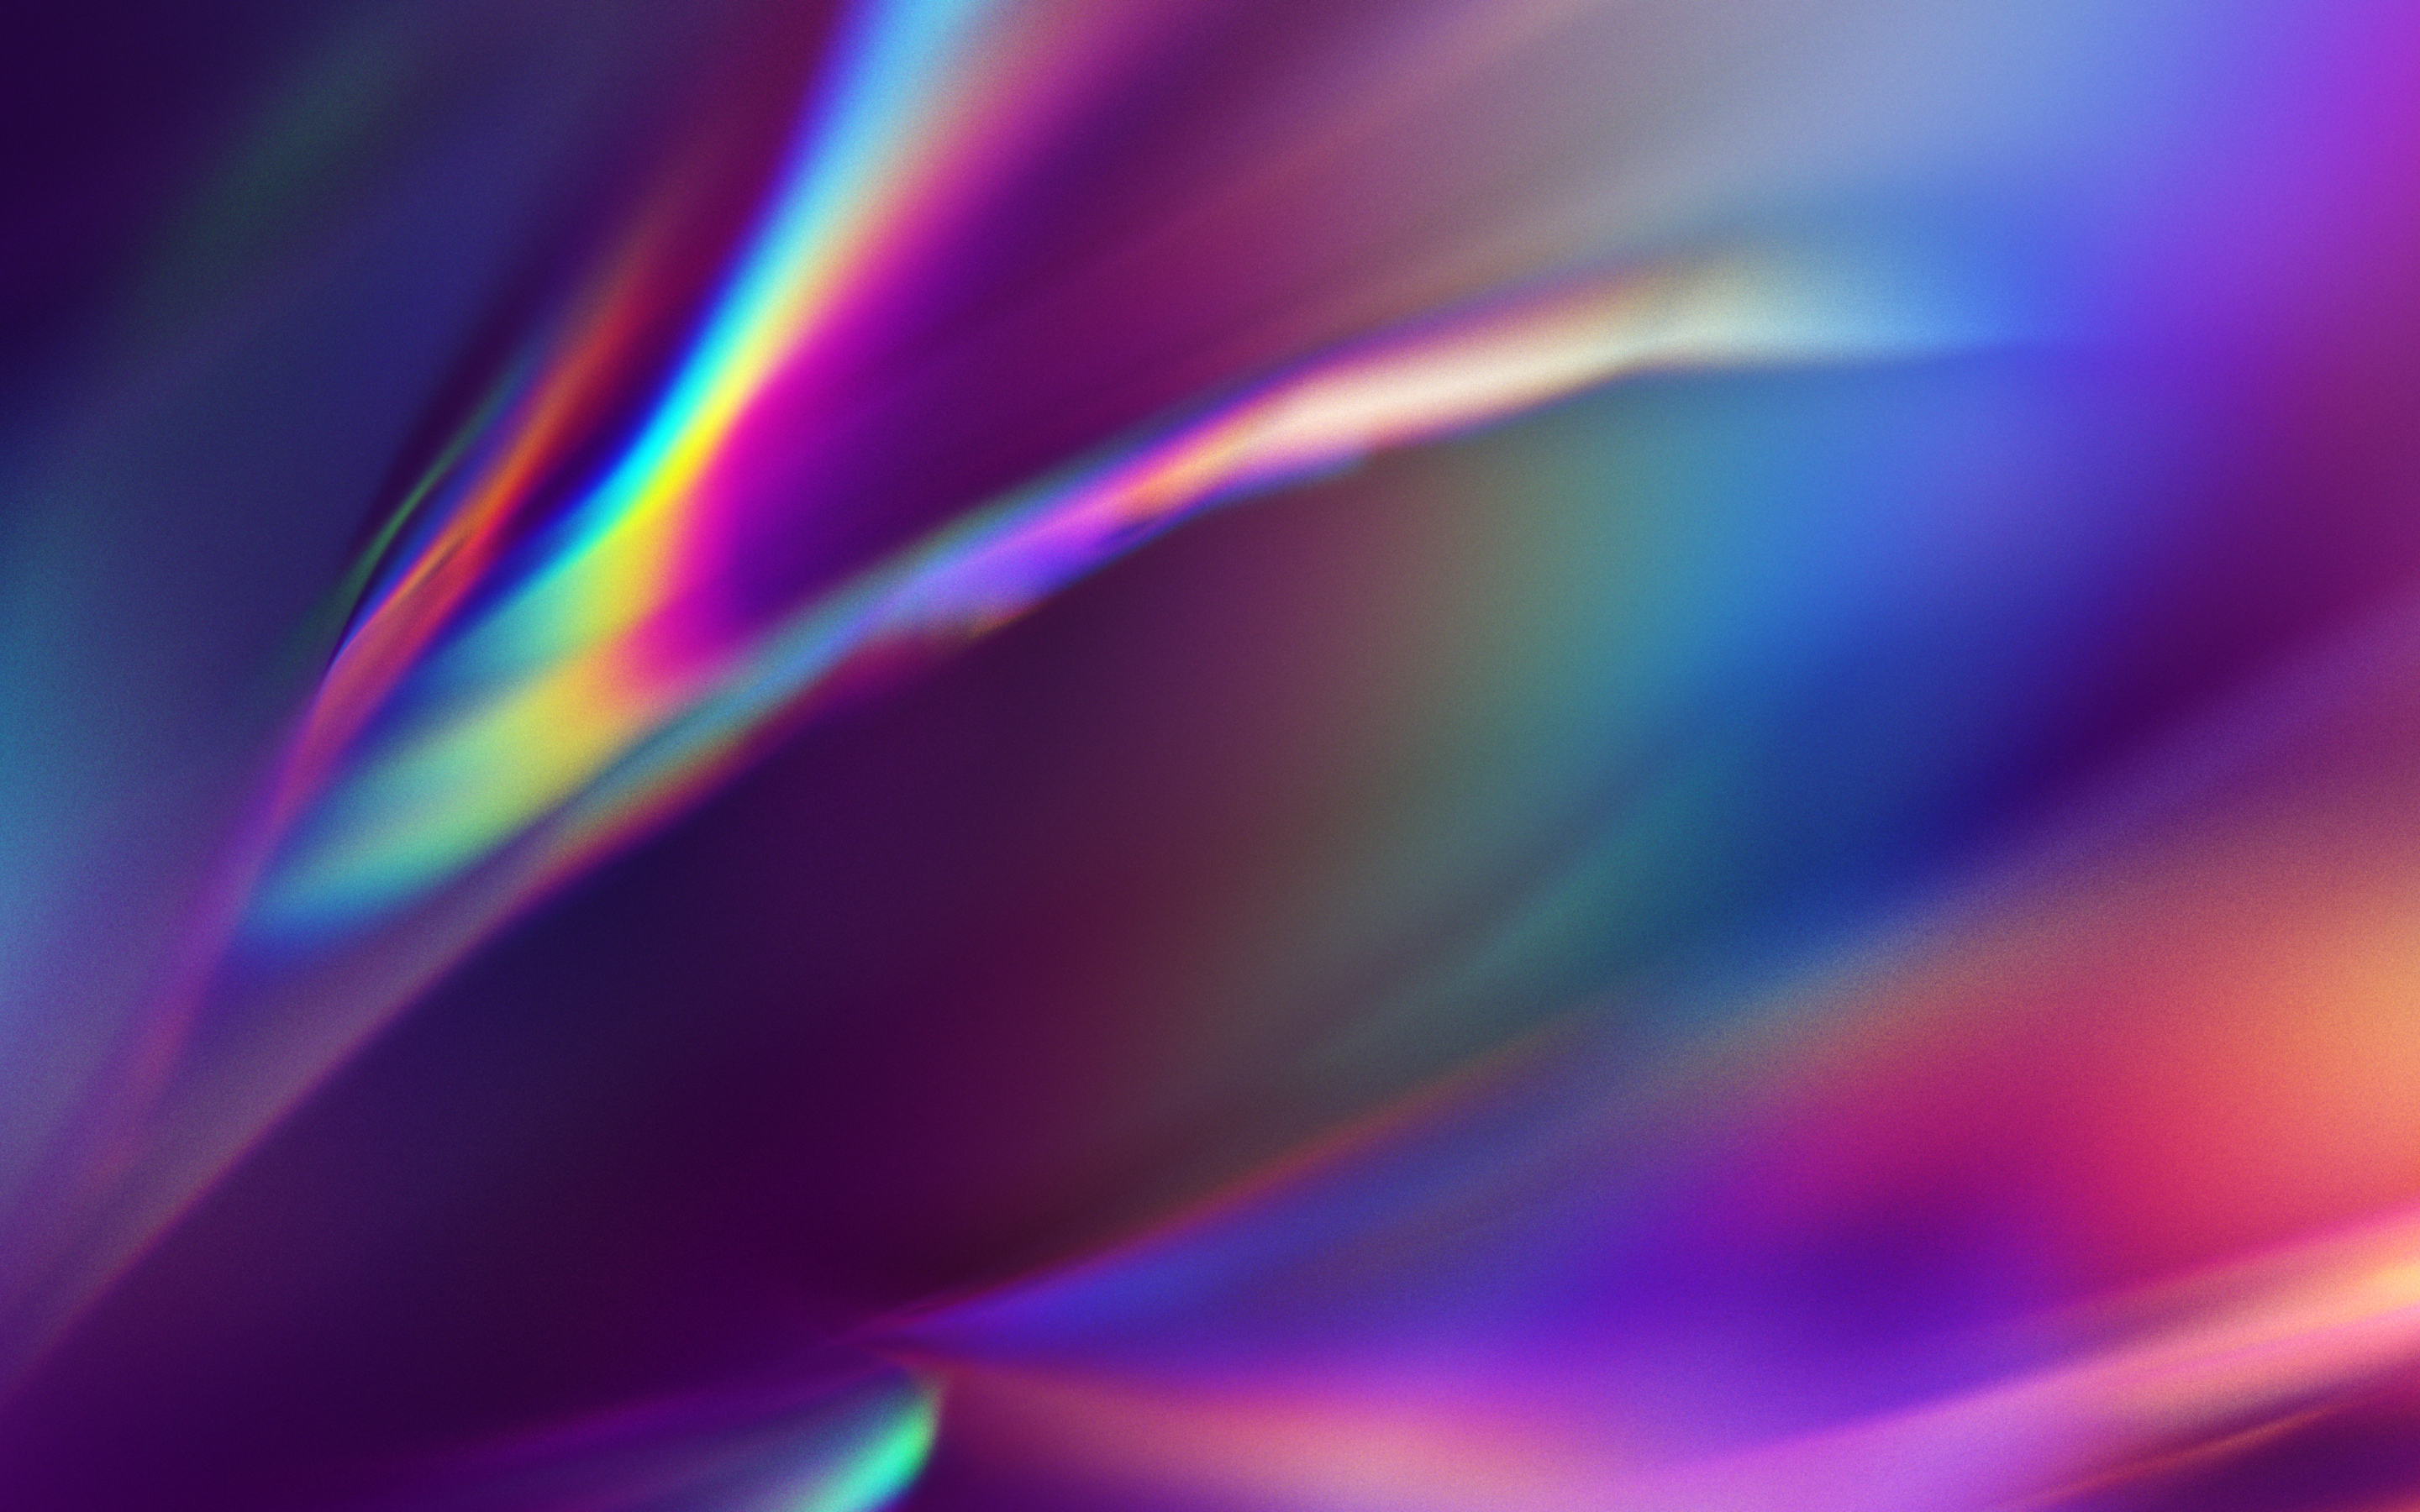 lights-blur-abstract-ti.jpg